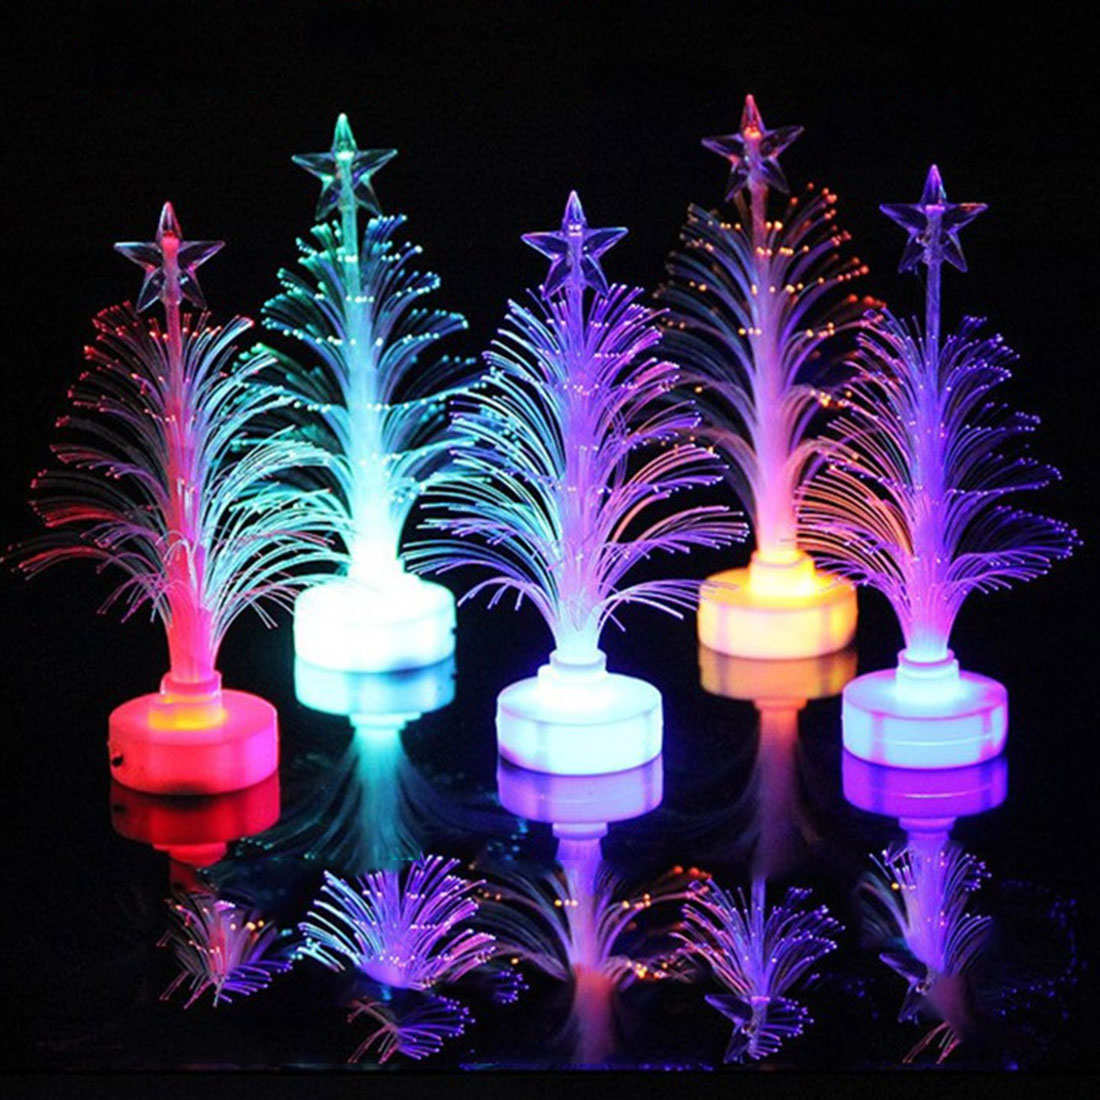 Colorful Christmas Tree  LED Light XMAS Night Lamp  Decoration  Home Table Party Decor Table Desk Night Lights